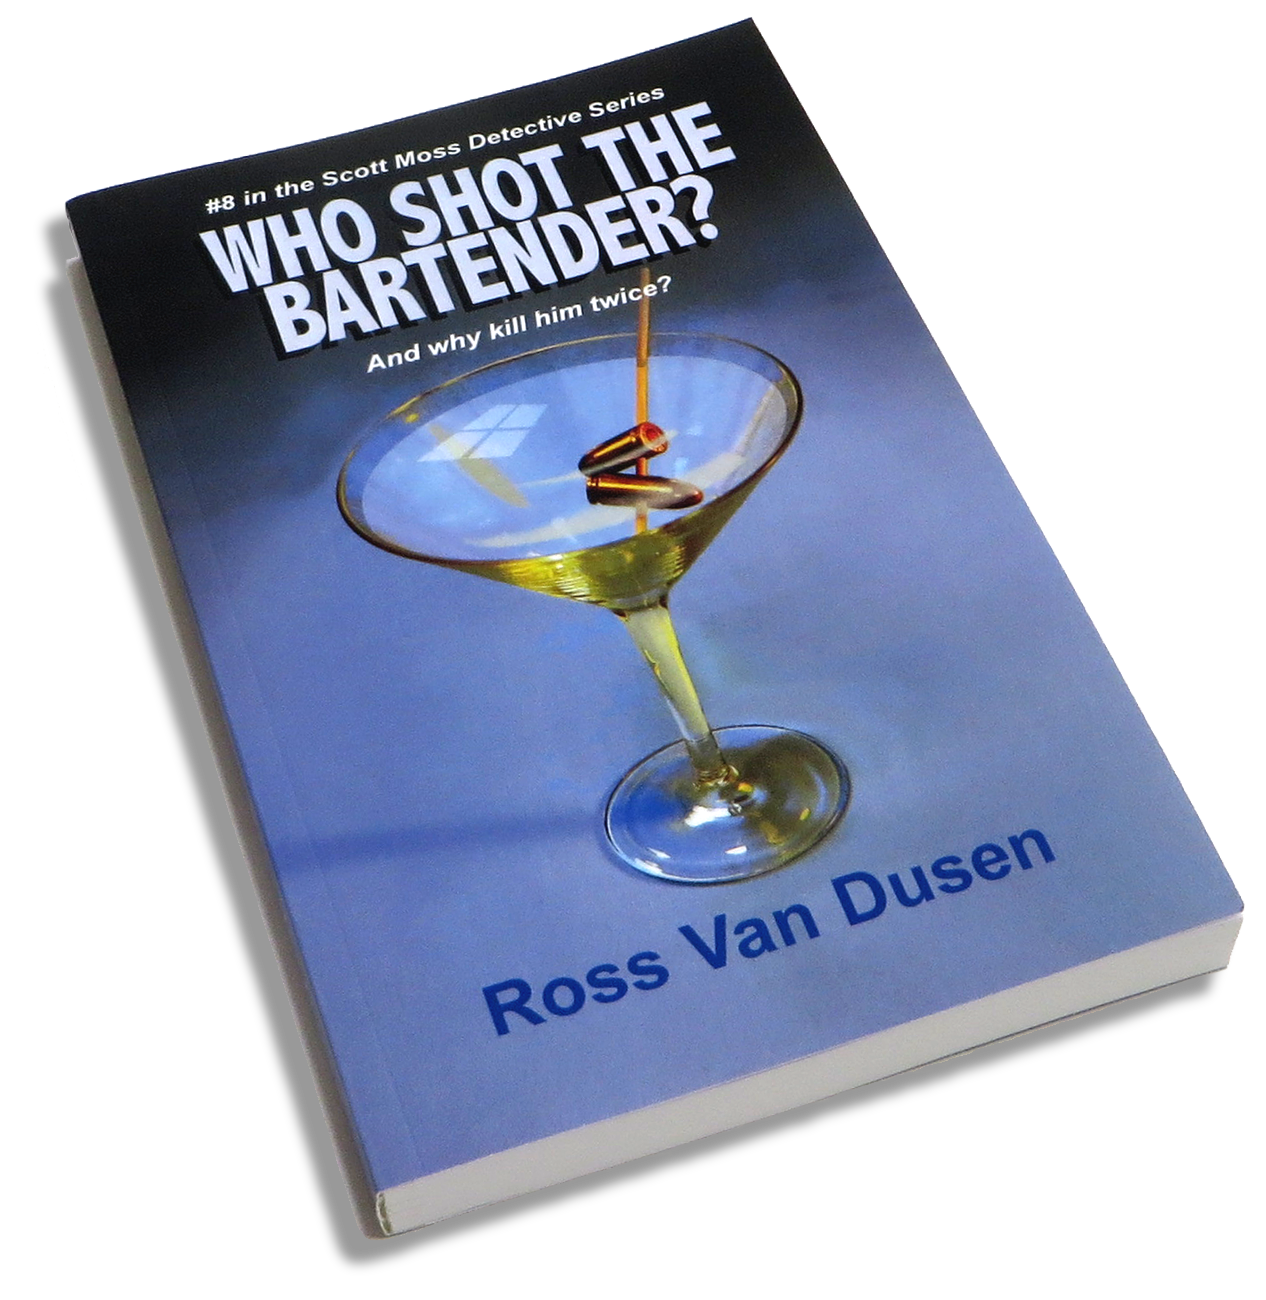 Who Shot The Bartender? book